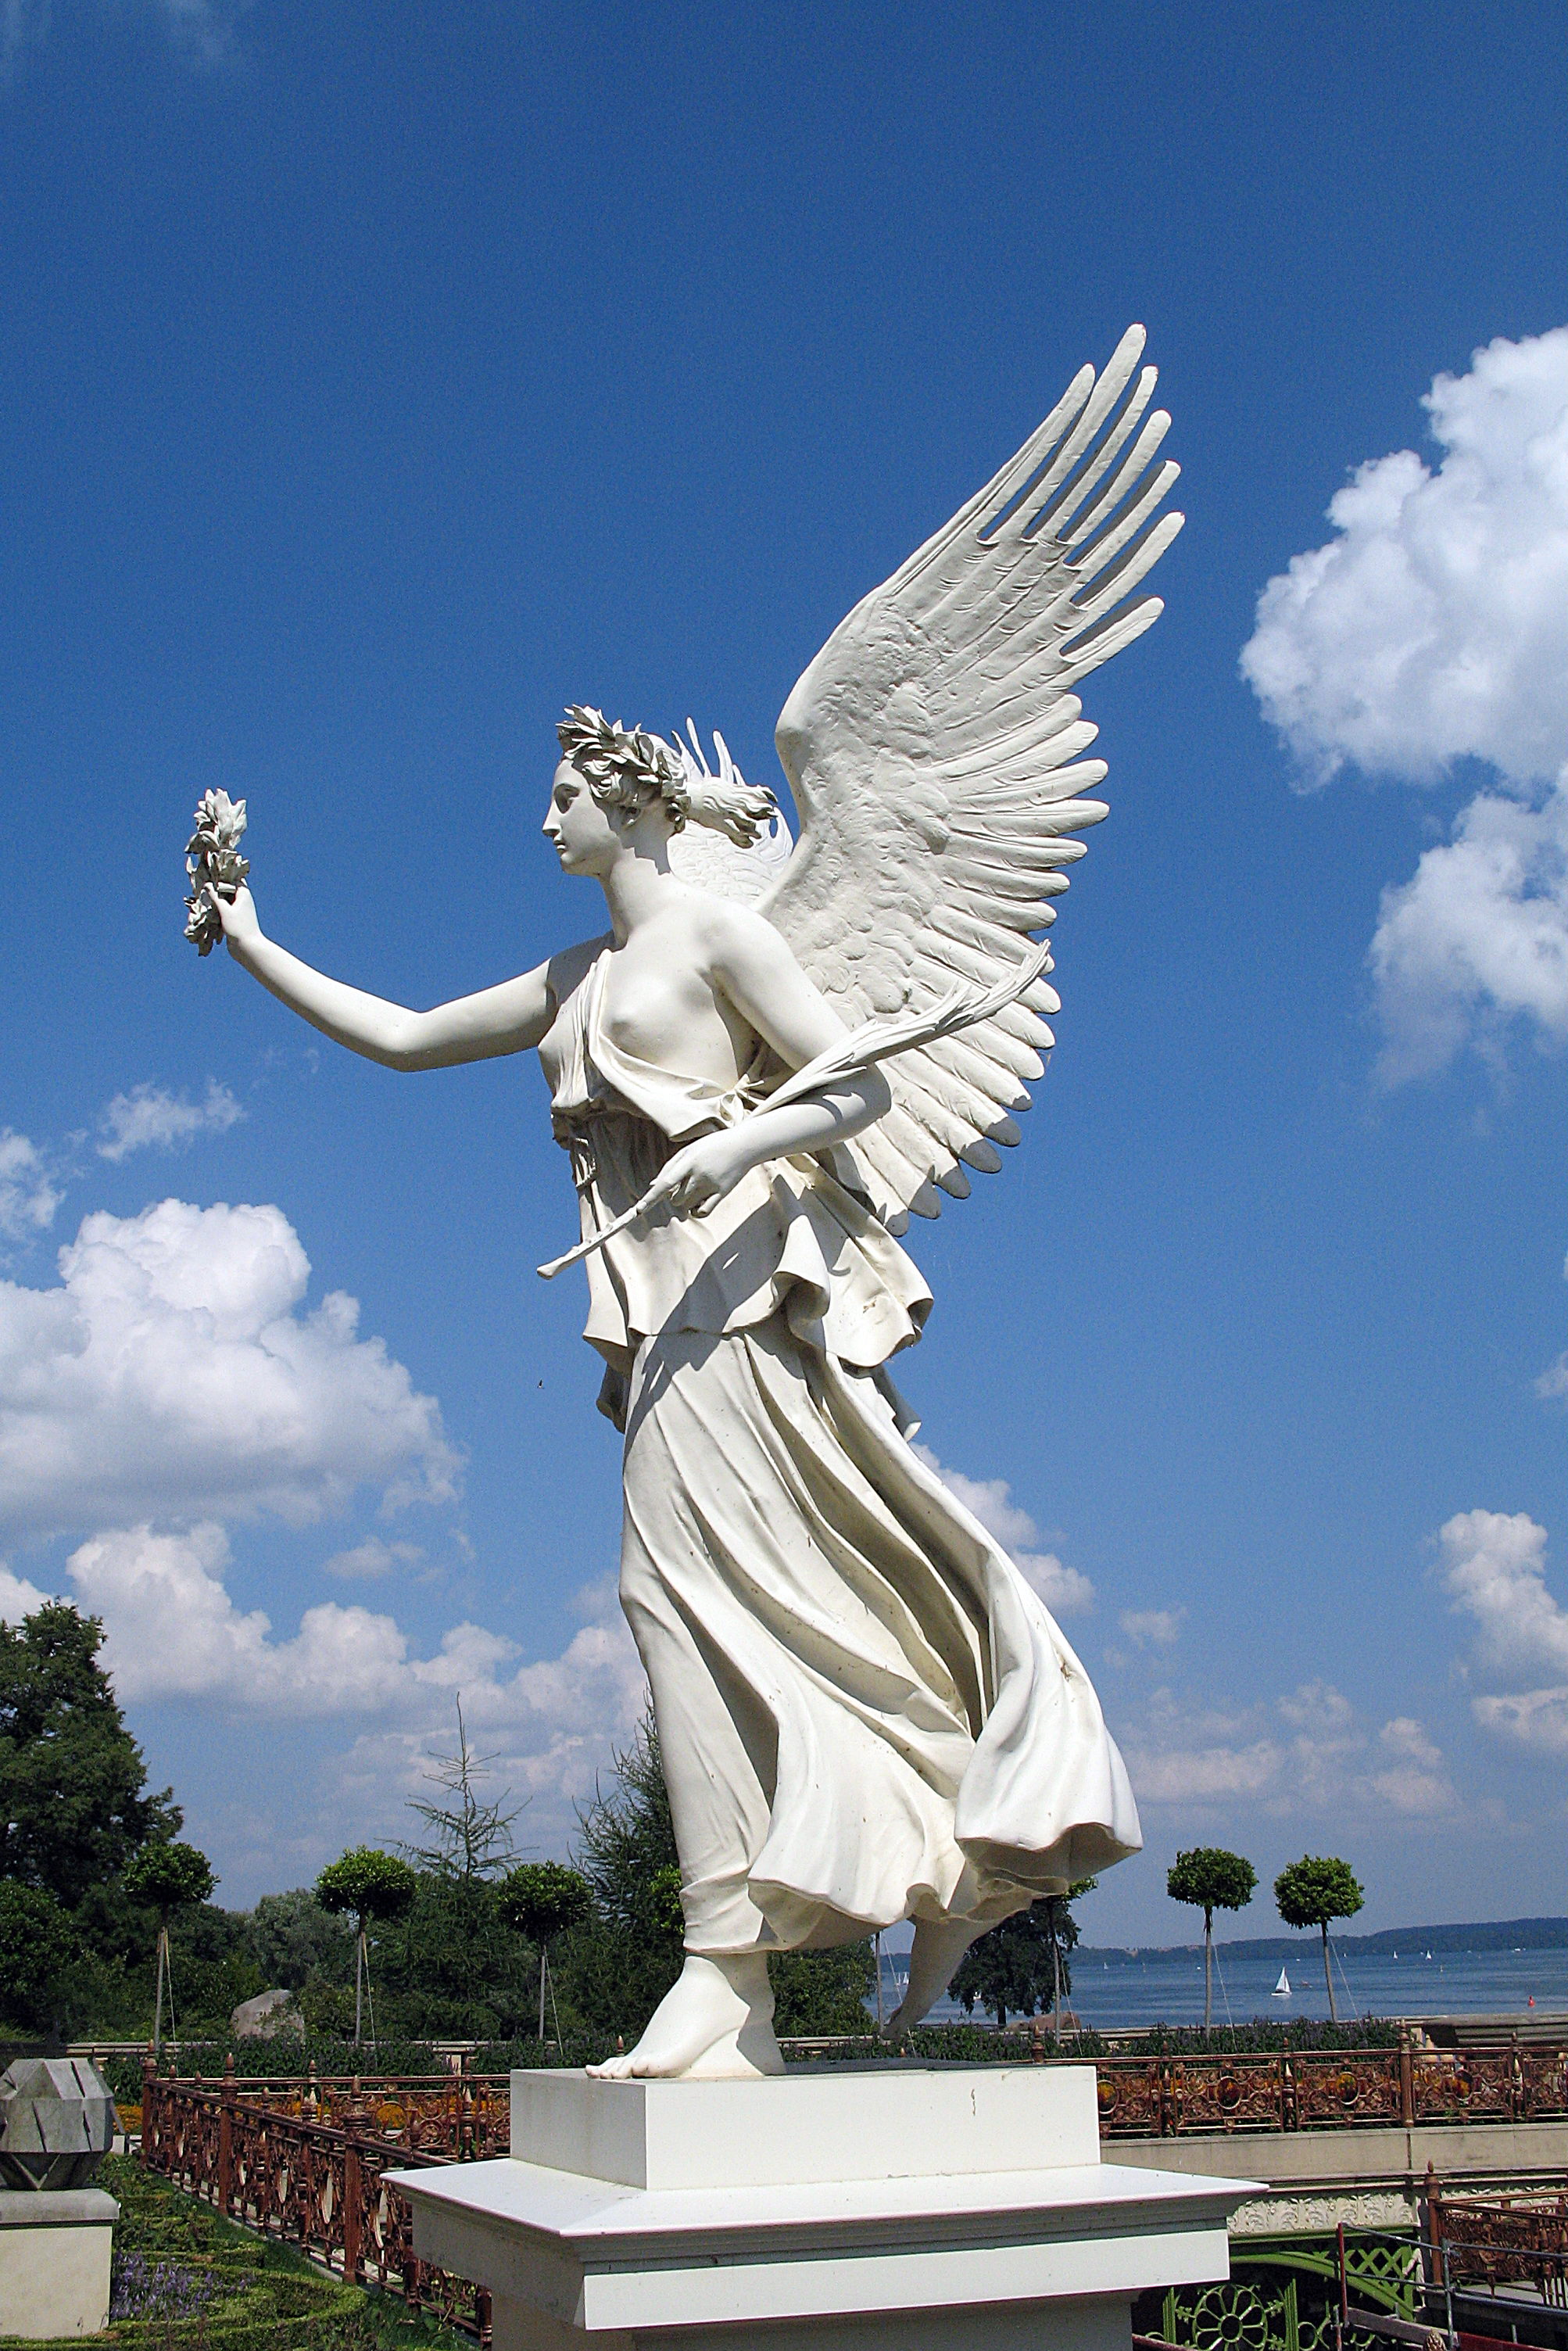 Http Commons Wikimedia Org Wiki File Angel Statue 2704391294 Jpg